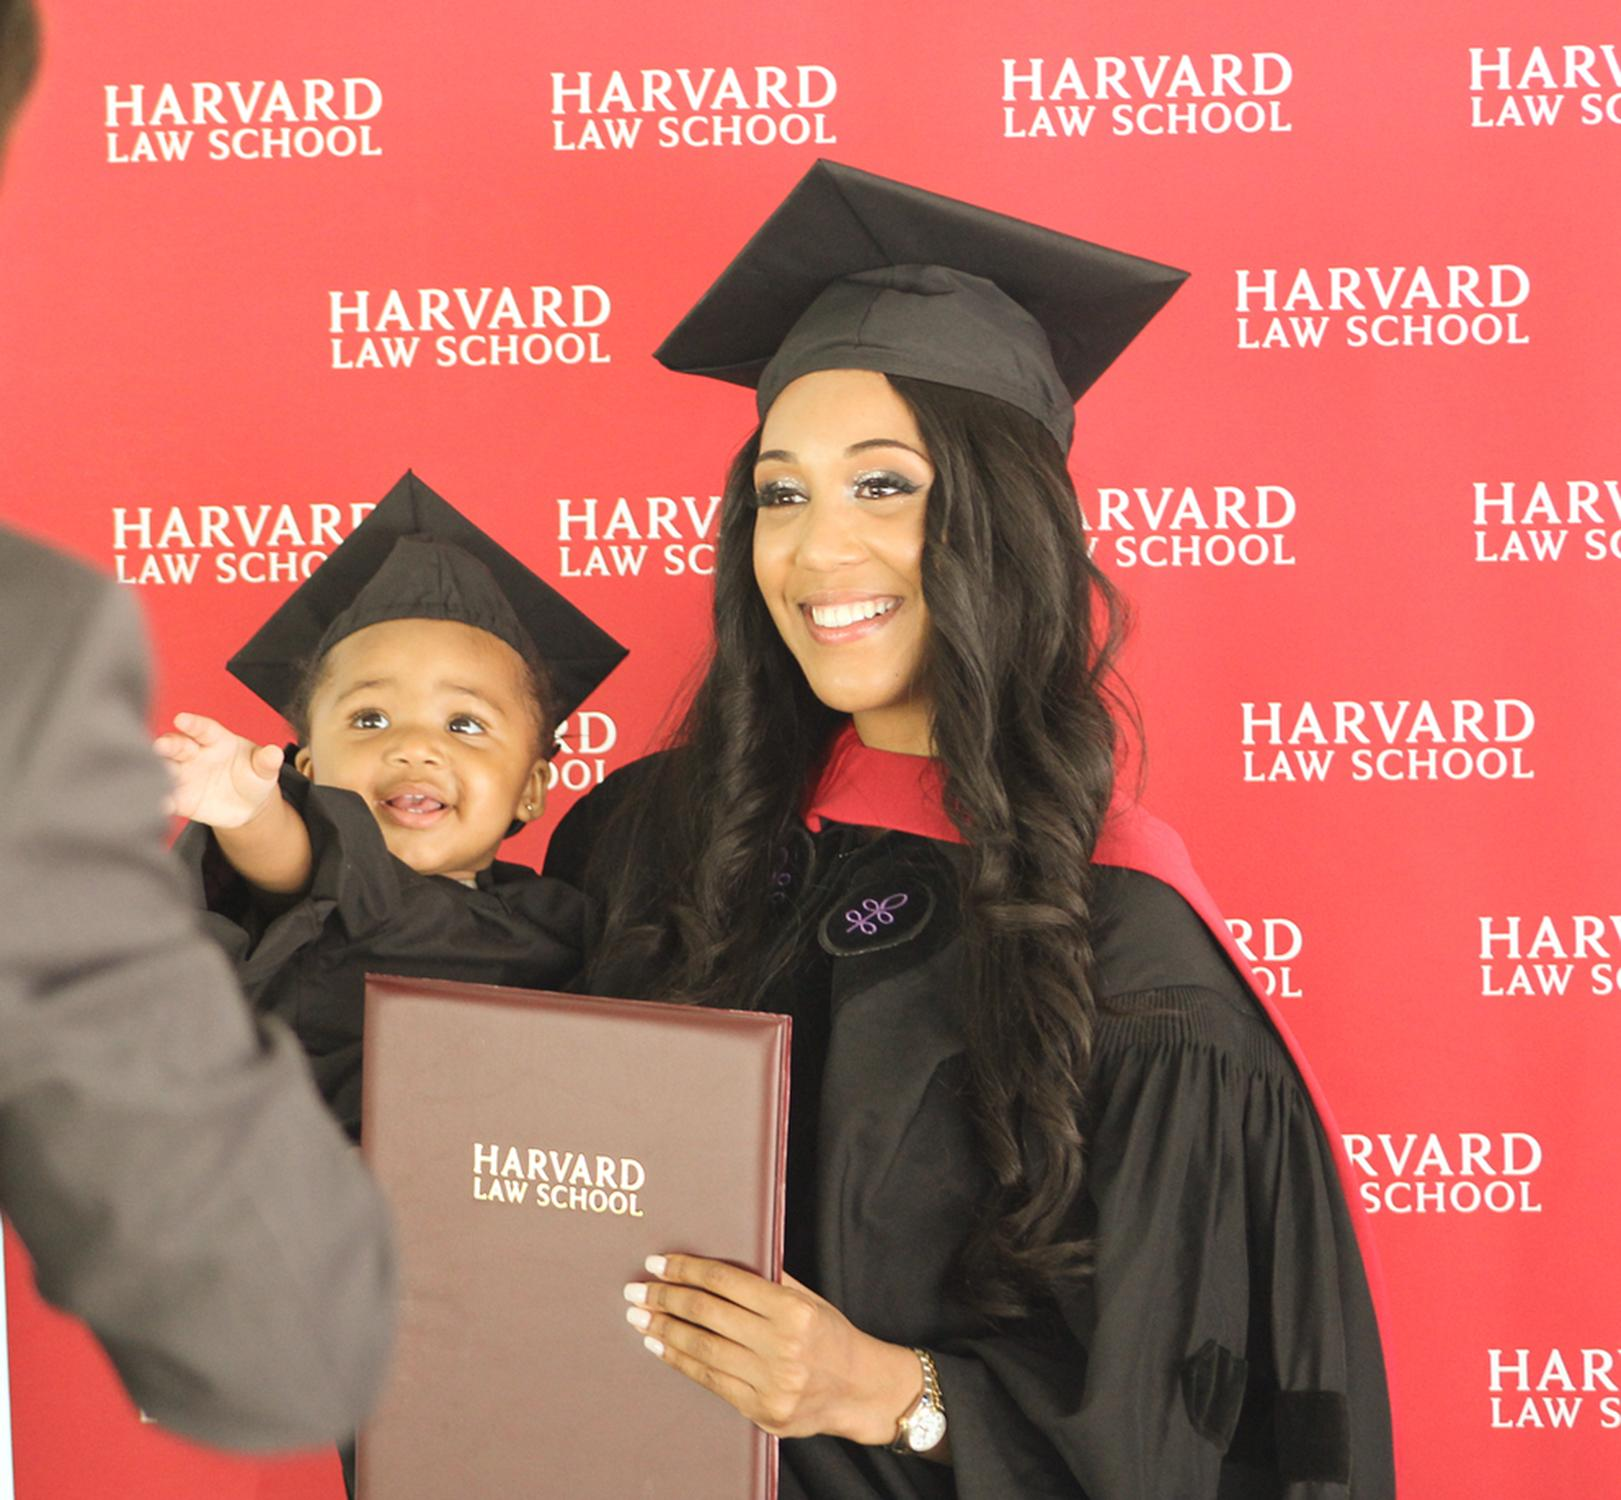 Single mom, 24, graduates from Harvard Law School: 'Let's keep beating all their odds'